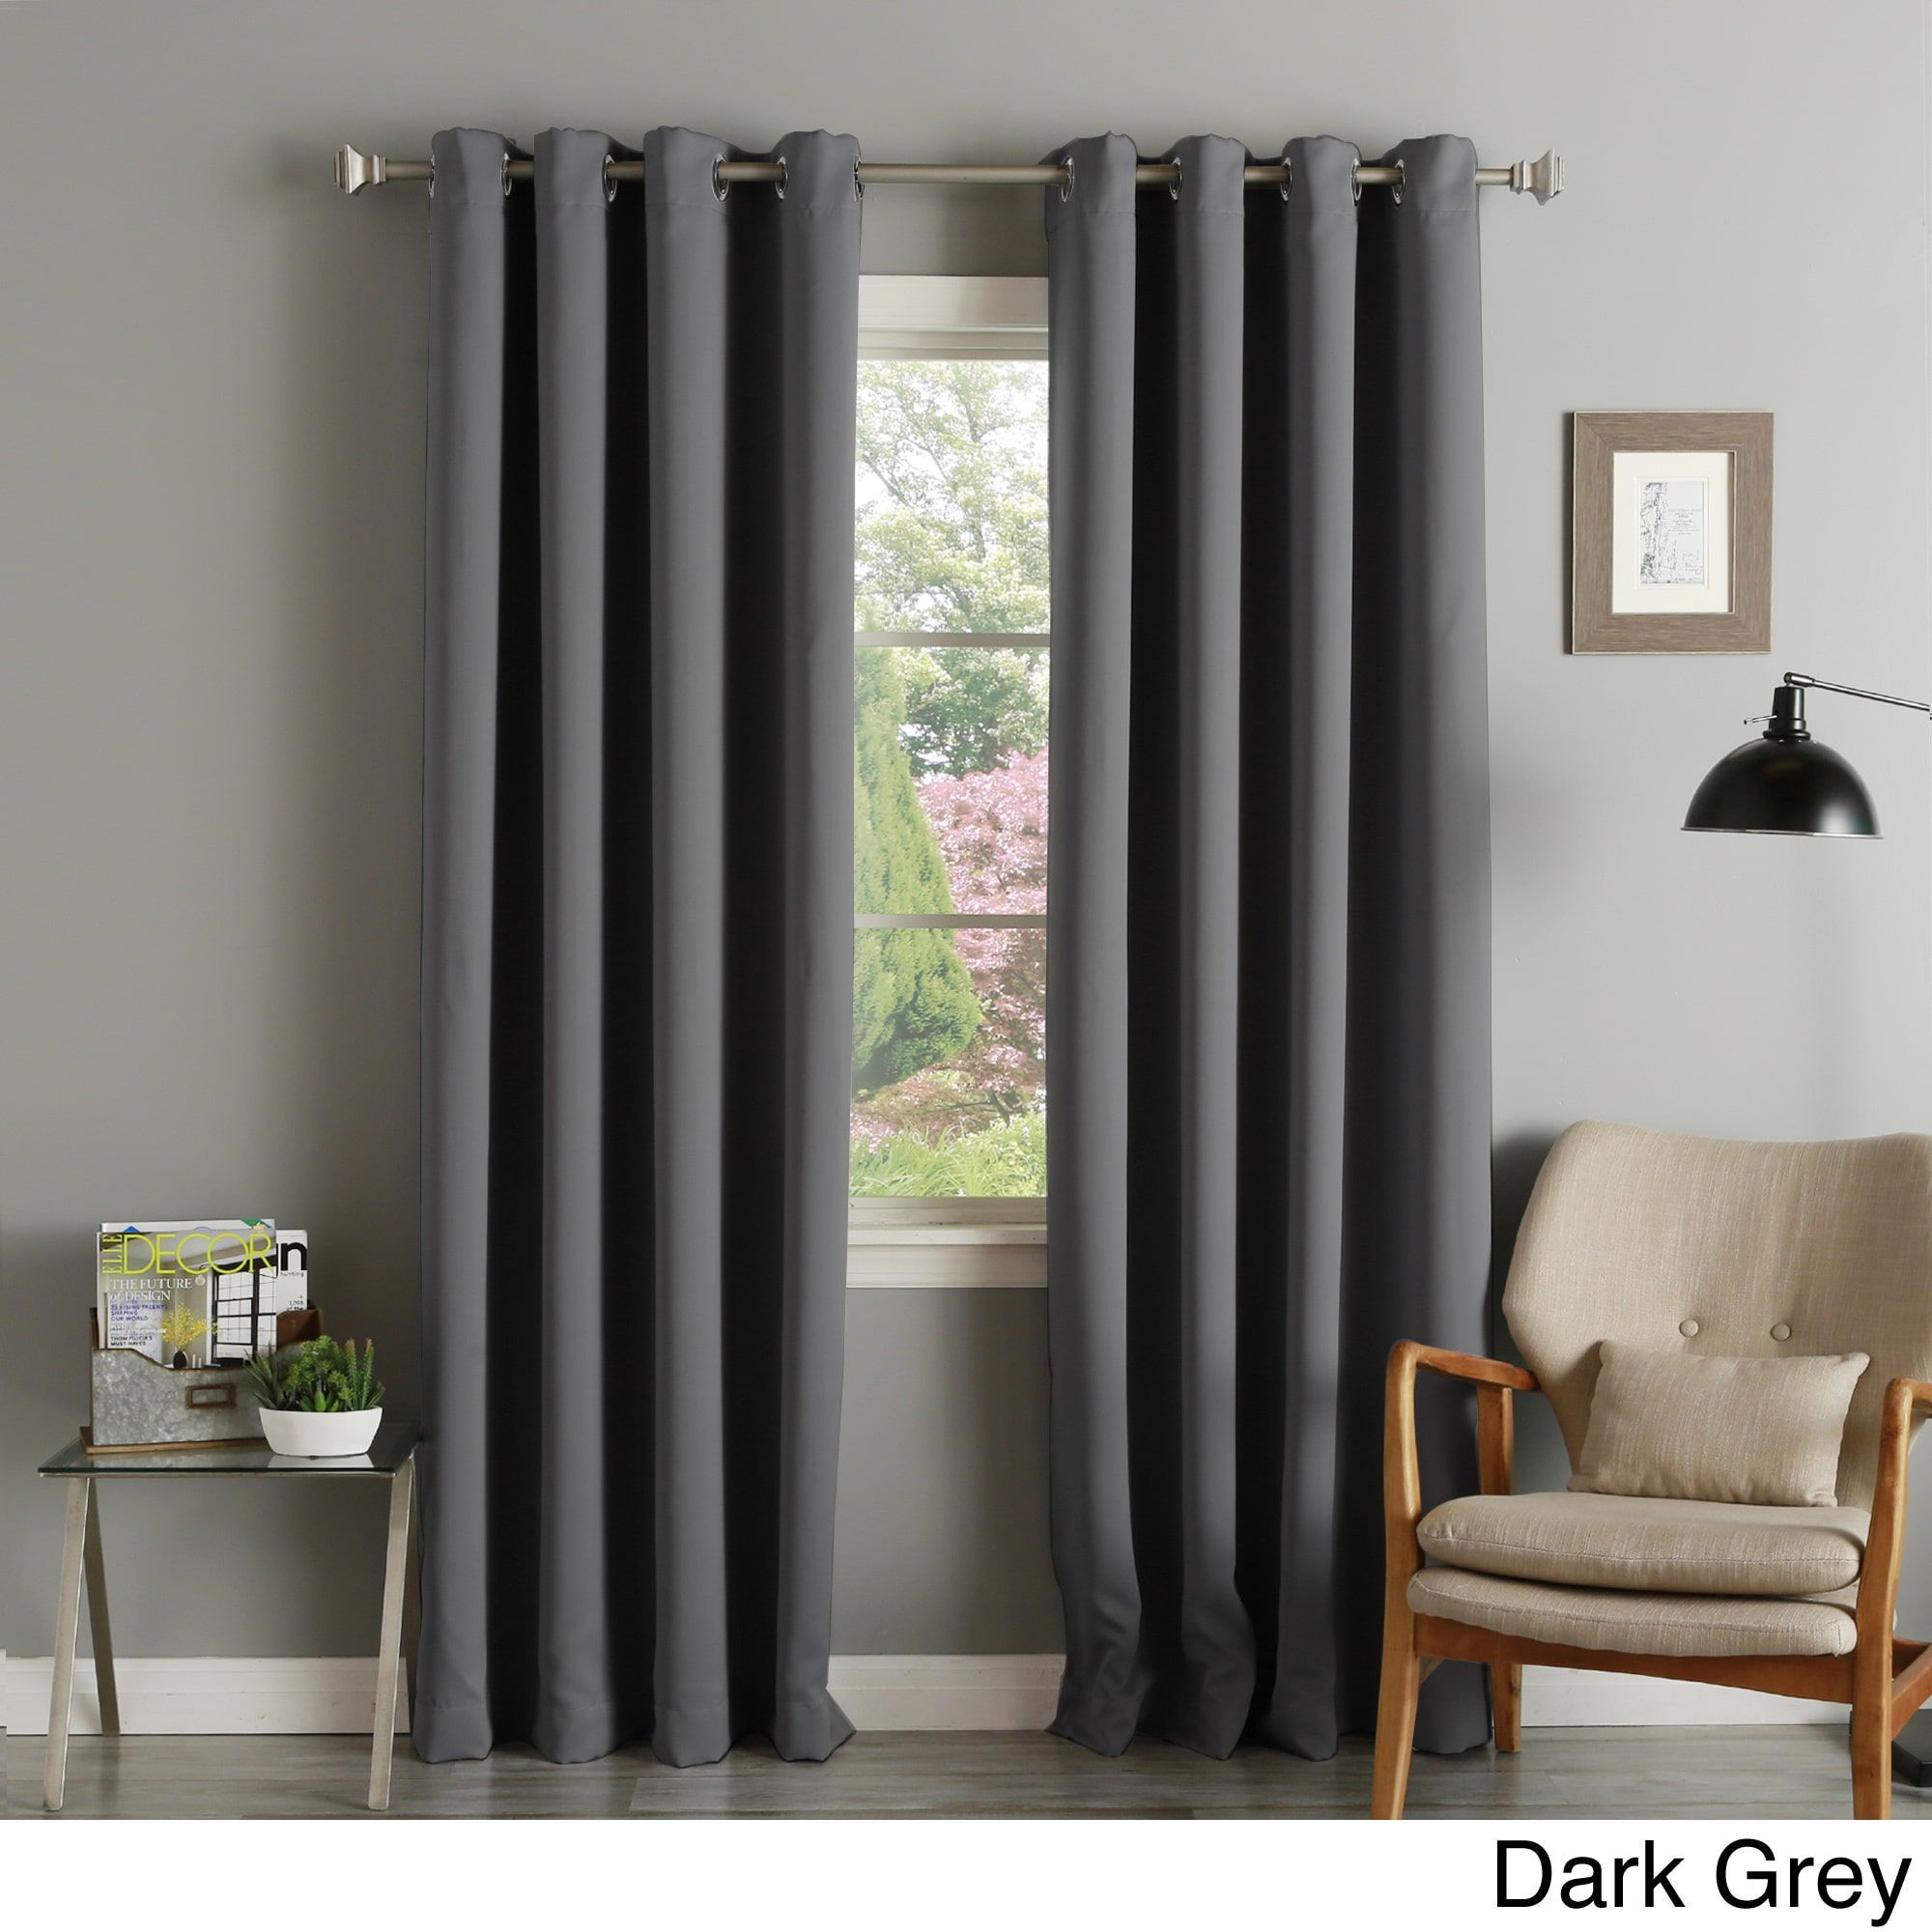 Thermal Insulated Curtains | Thermal Curtains Cheap | Curtains Heat Insulation